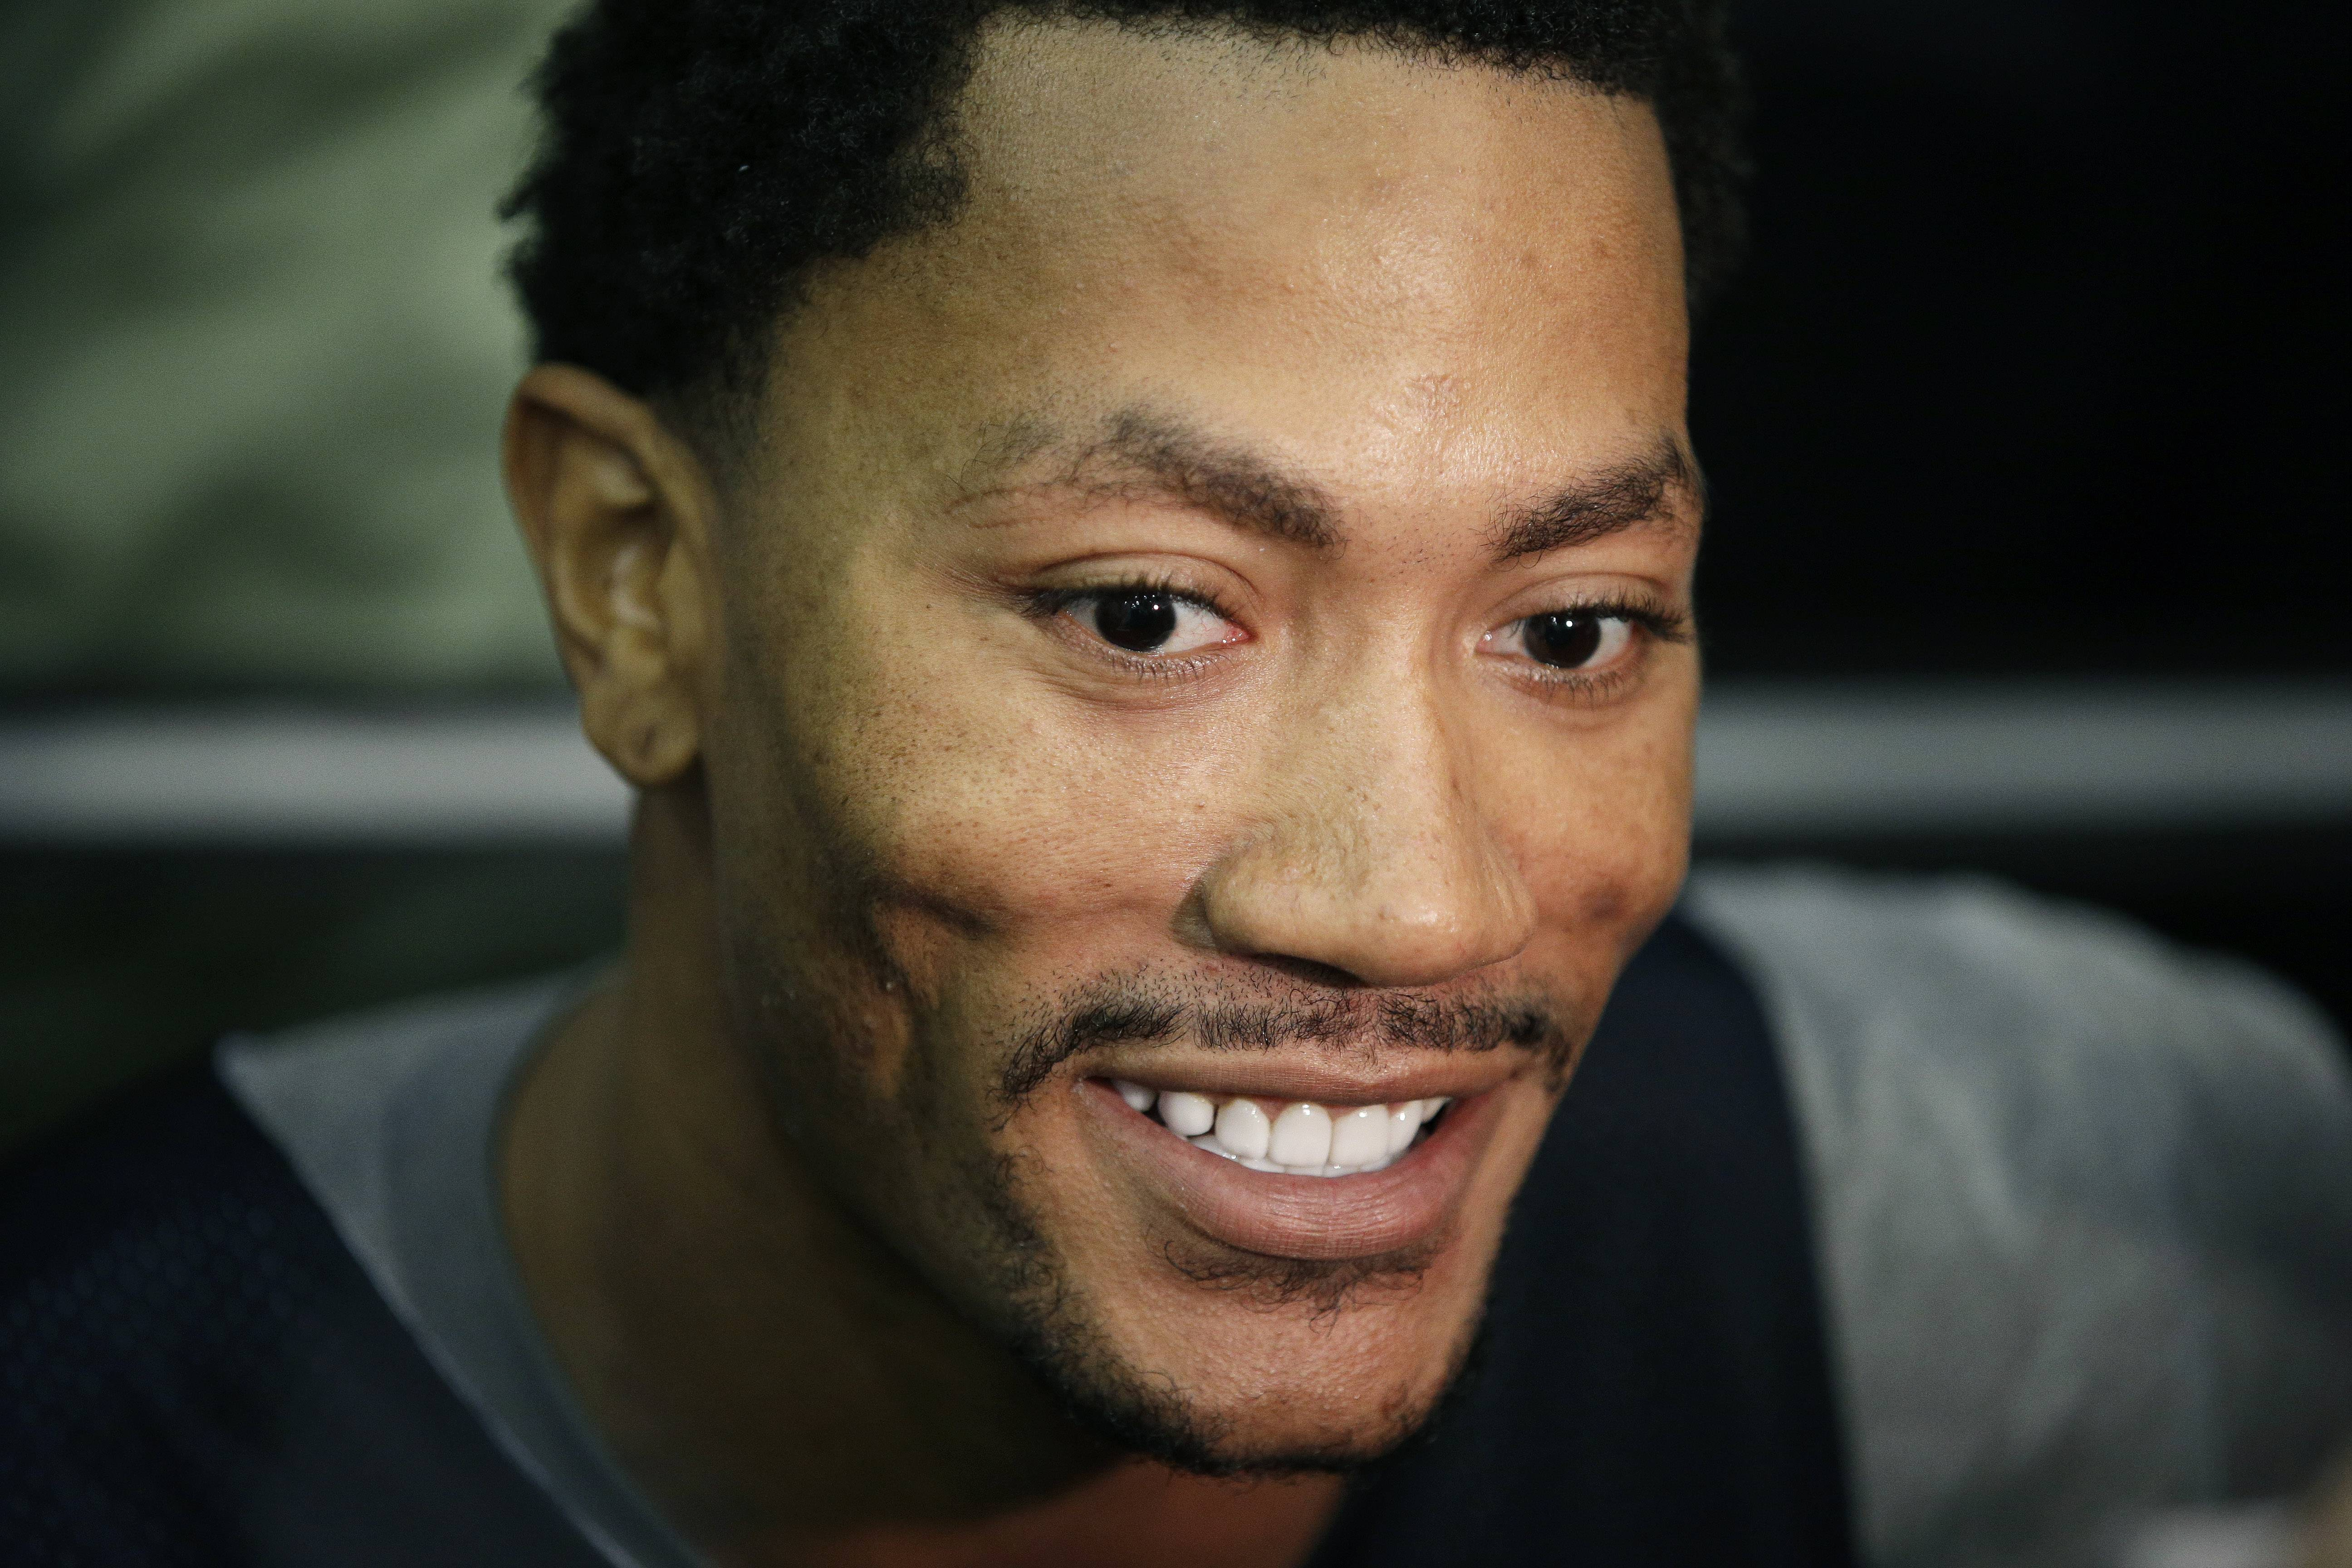 Derrick Rose and the Bulls will open the season against Carmelo Anthony and the Knicks in New York Knicks on Oct. 29.